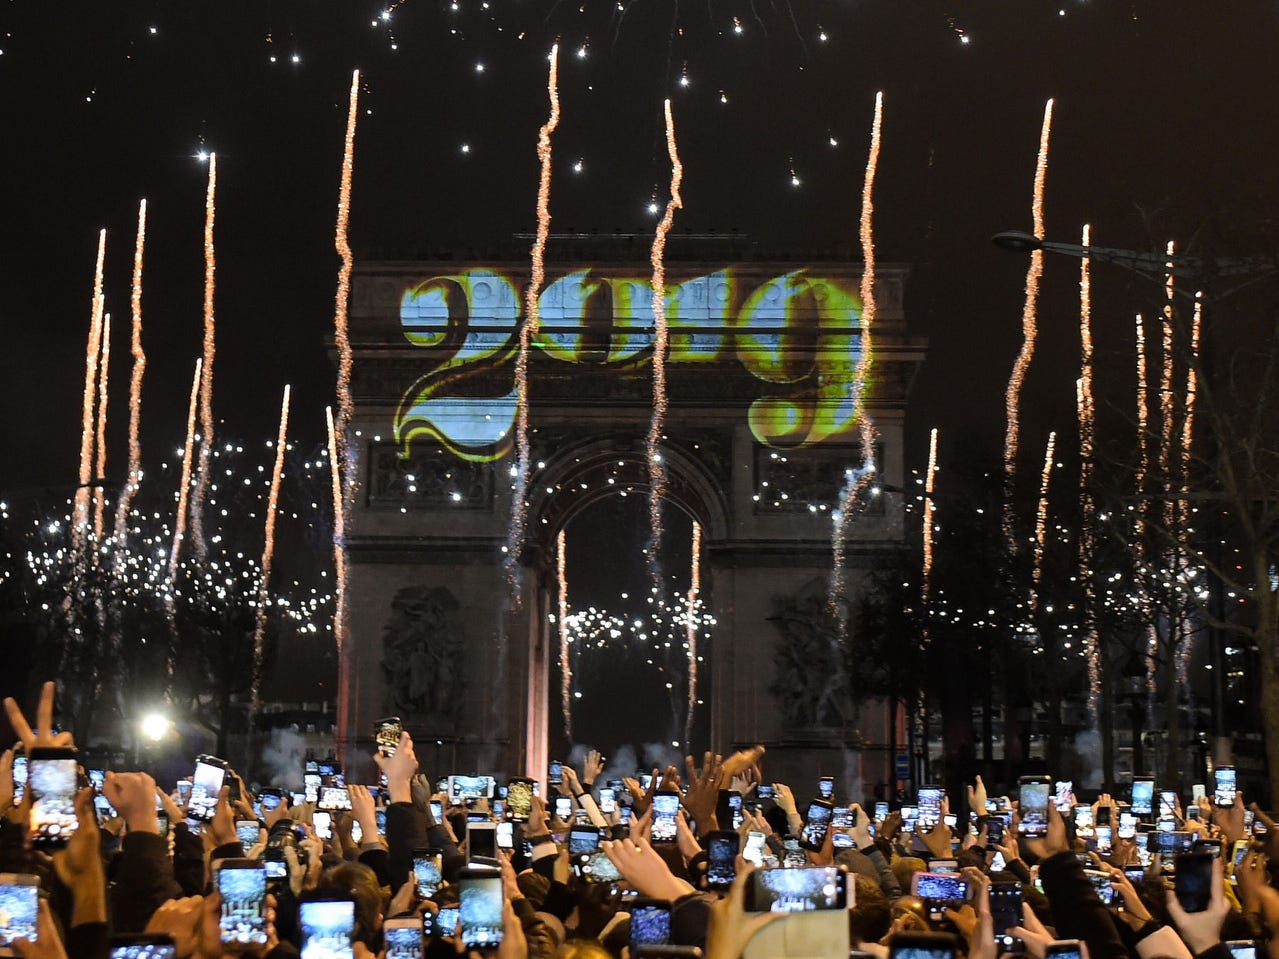 People take pictures with their mobile phones of fireworks exploding over the Arc de Triomphe on the Champs-Elysees for New Year's celebrations in the French capital Paris on Jan. 1, 2019.